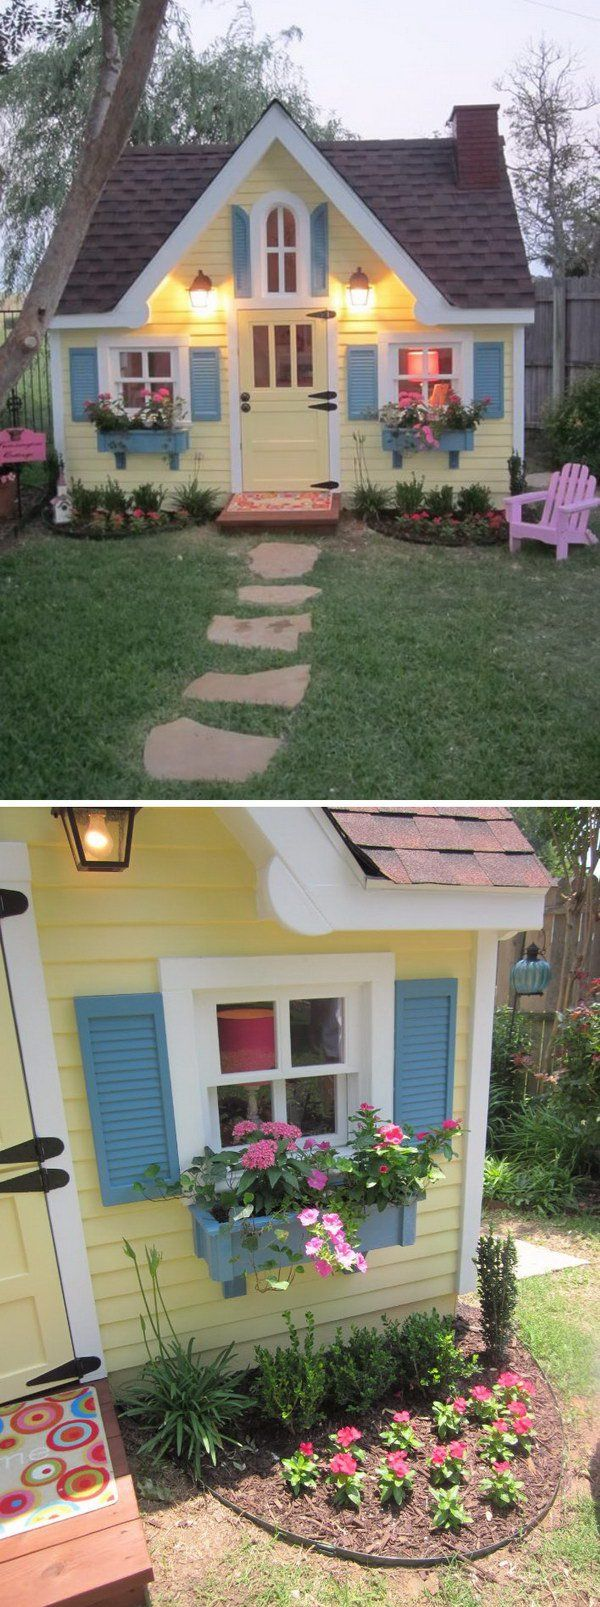 ^ 1000+ ideas about Shed Homes on Pinterest